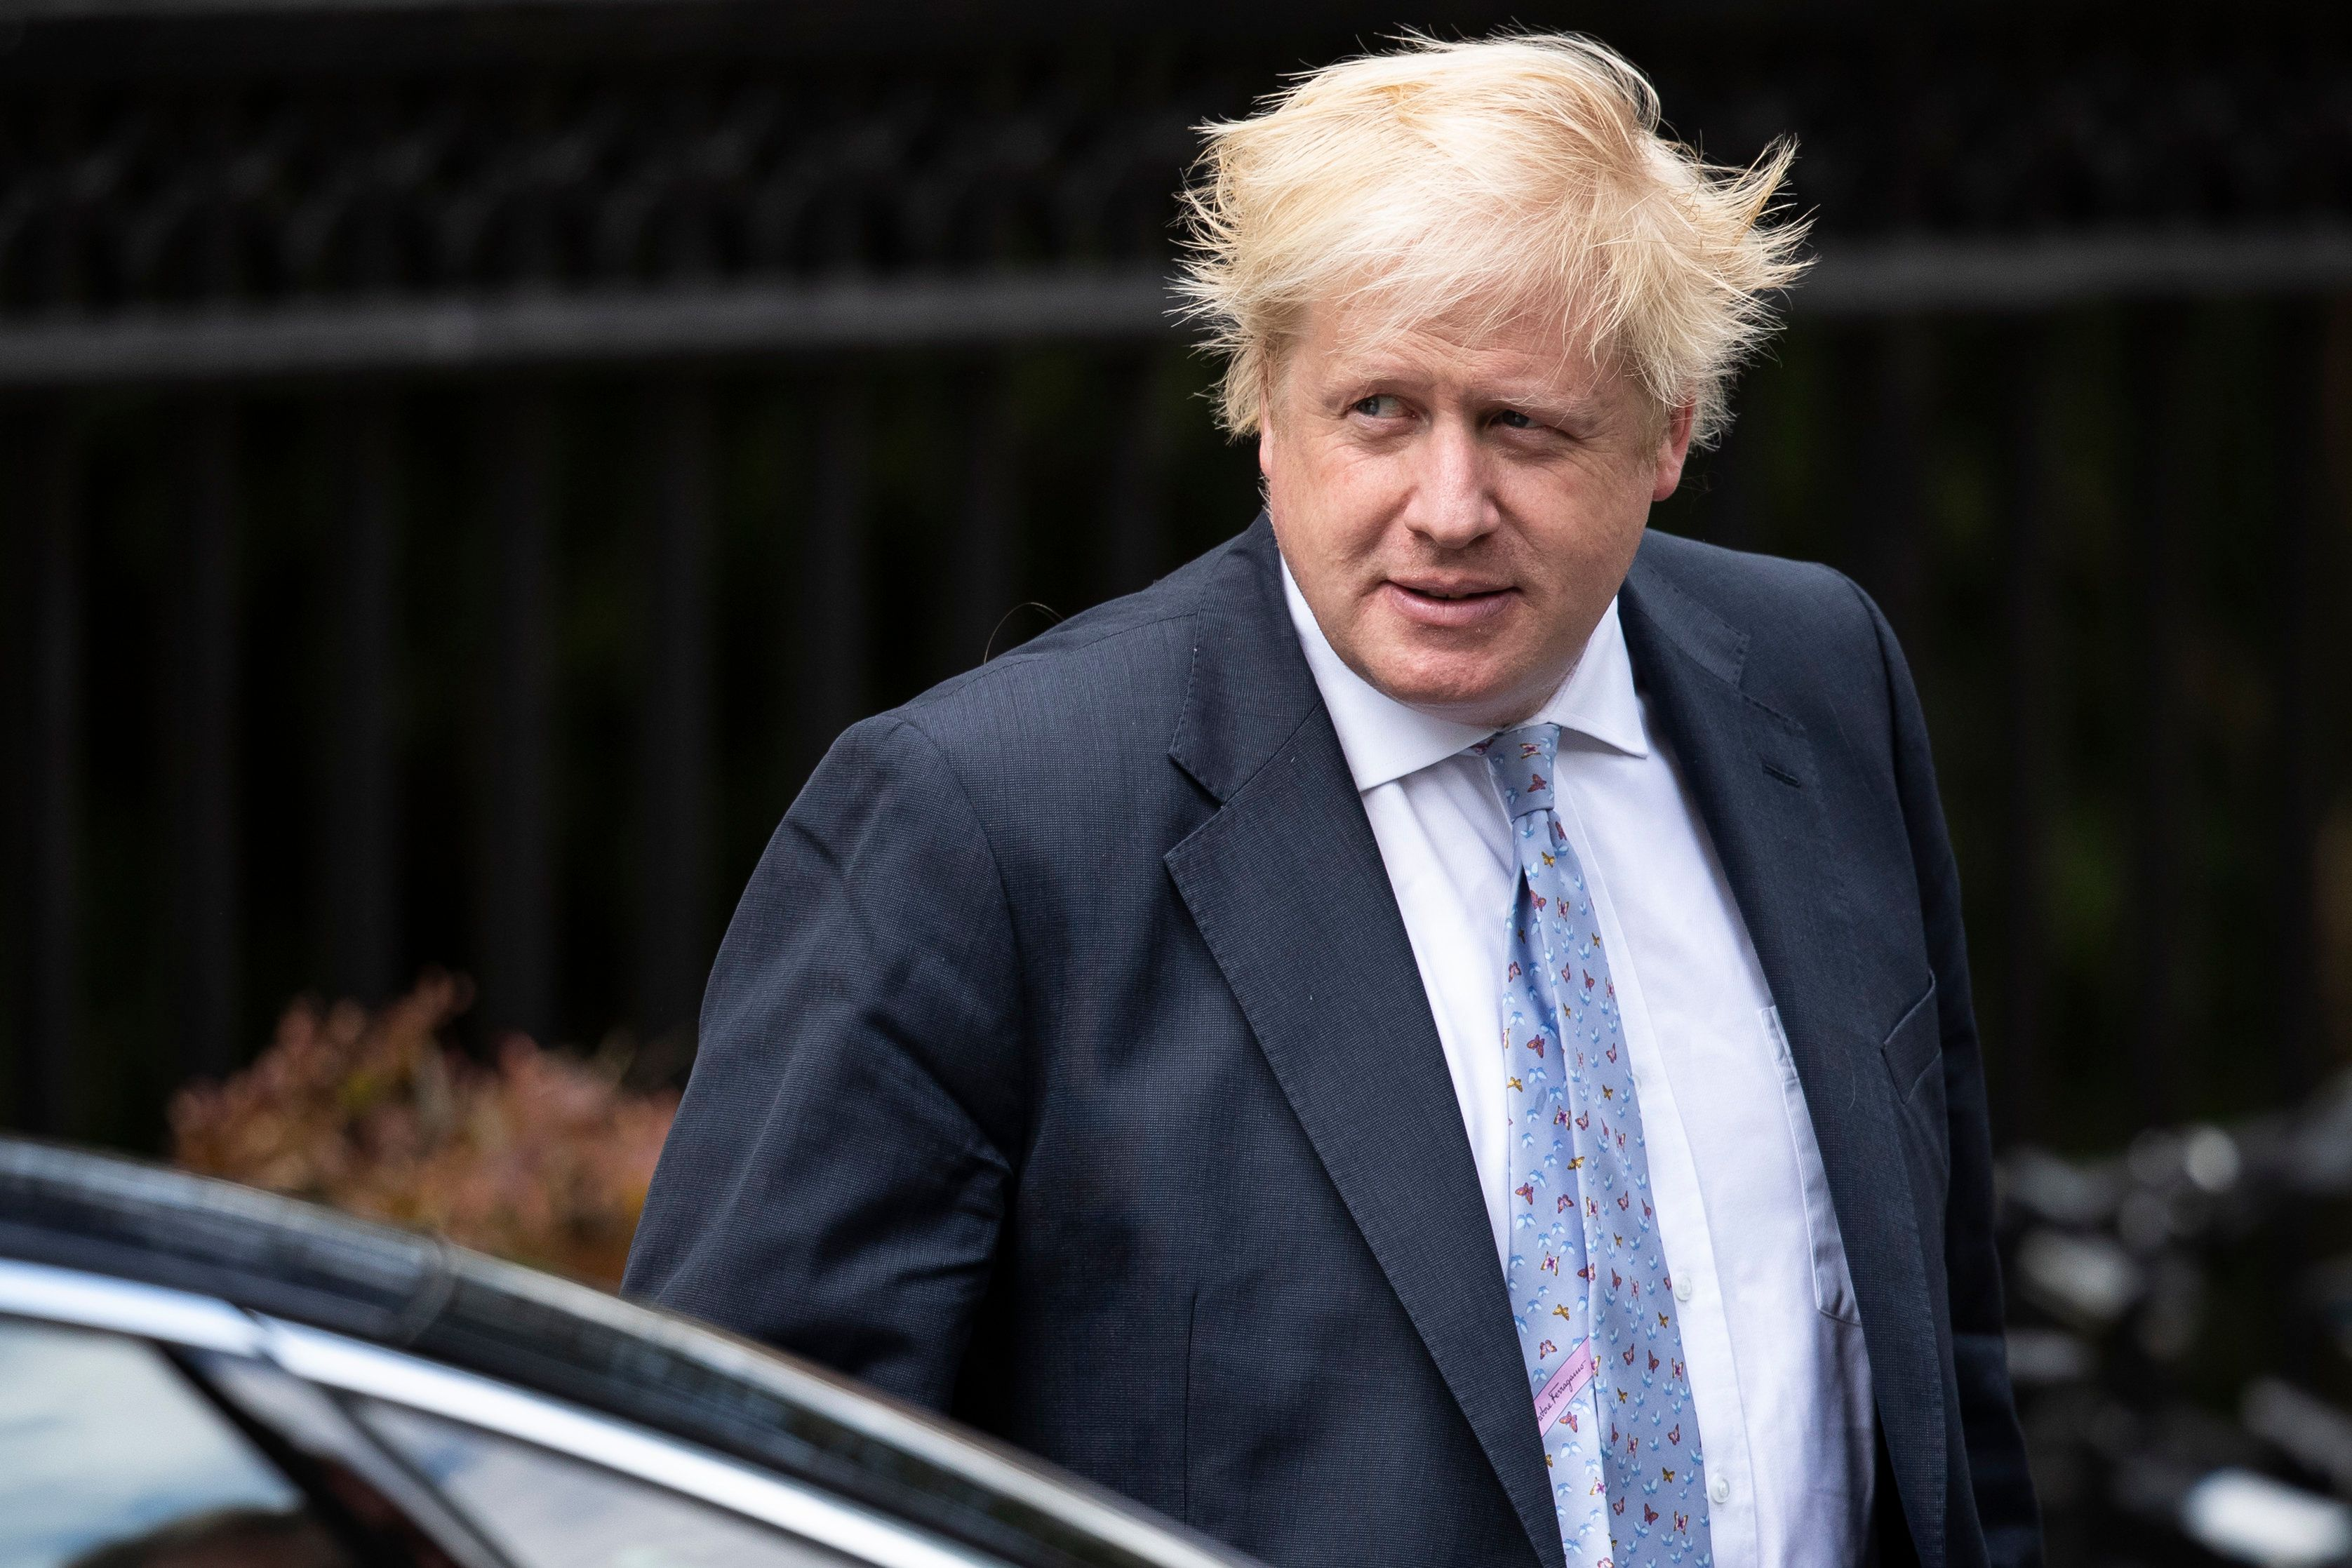 Boris Johnson told by Tory chair to apologise for burka comments